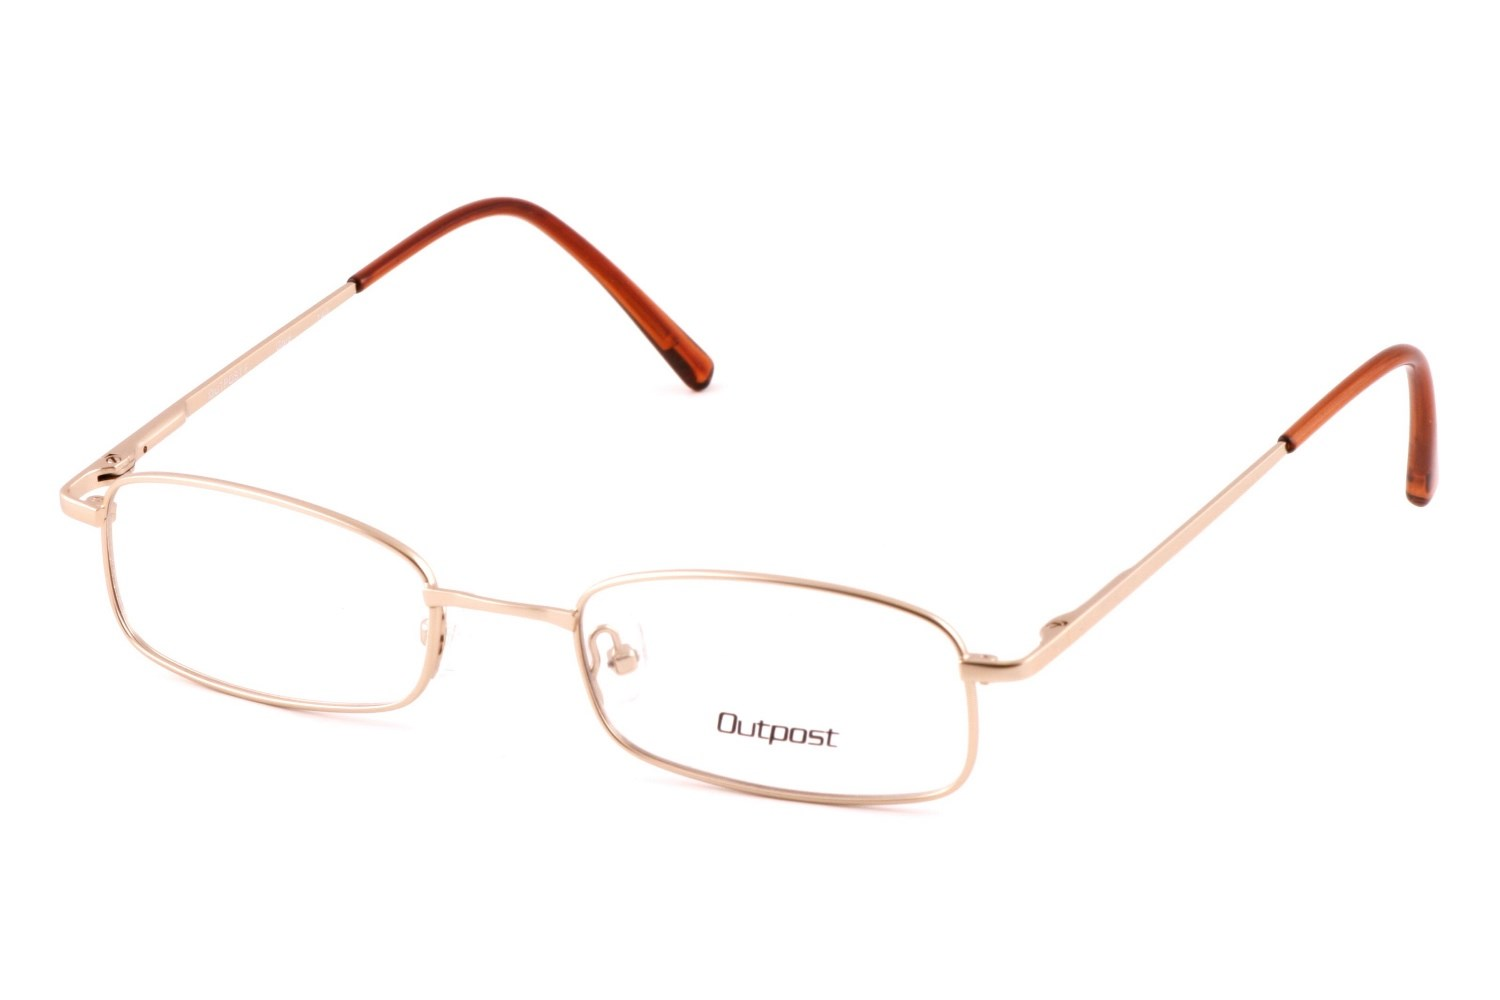 Outpost F Prescription Eyeglasses Frames